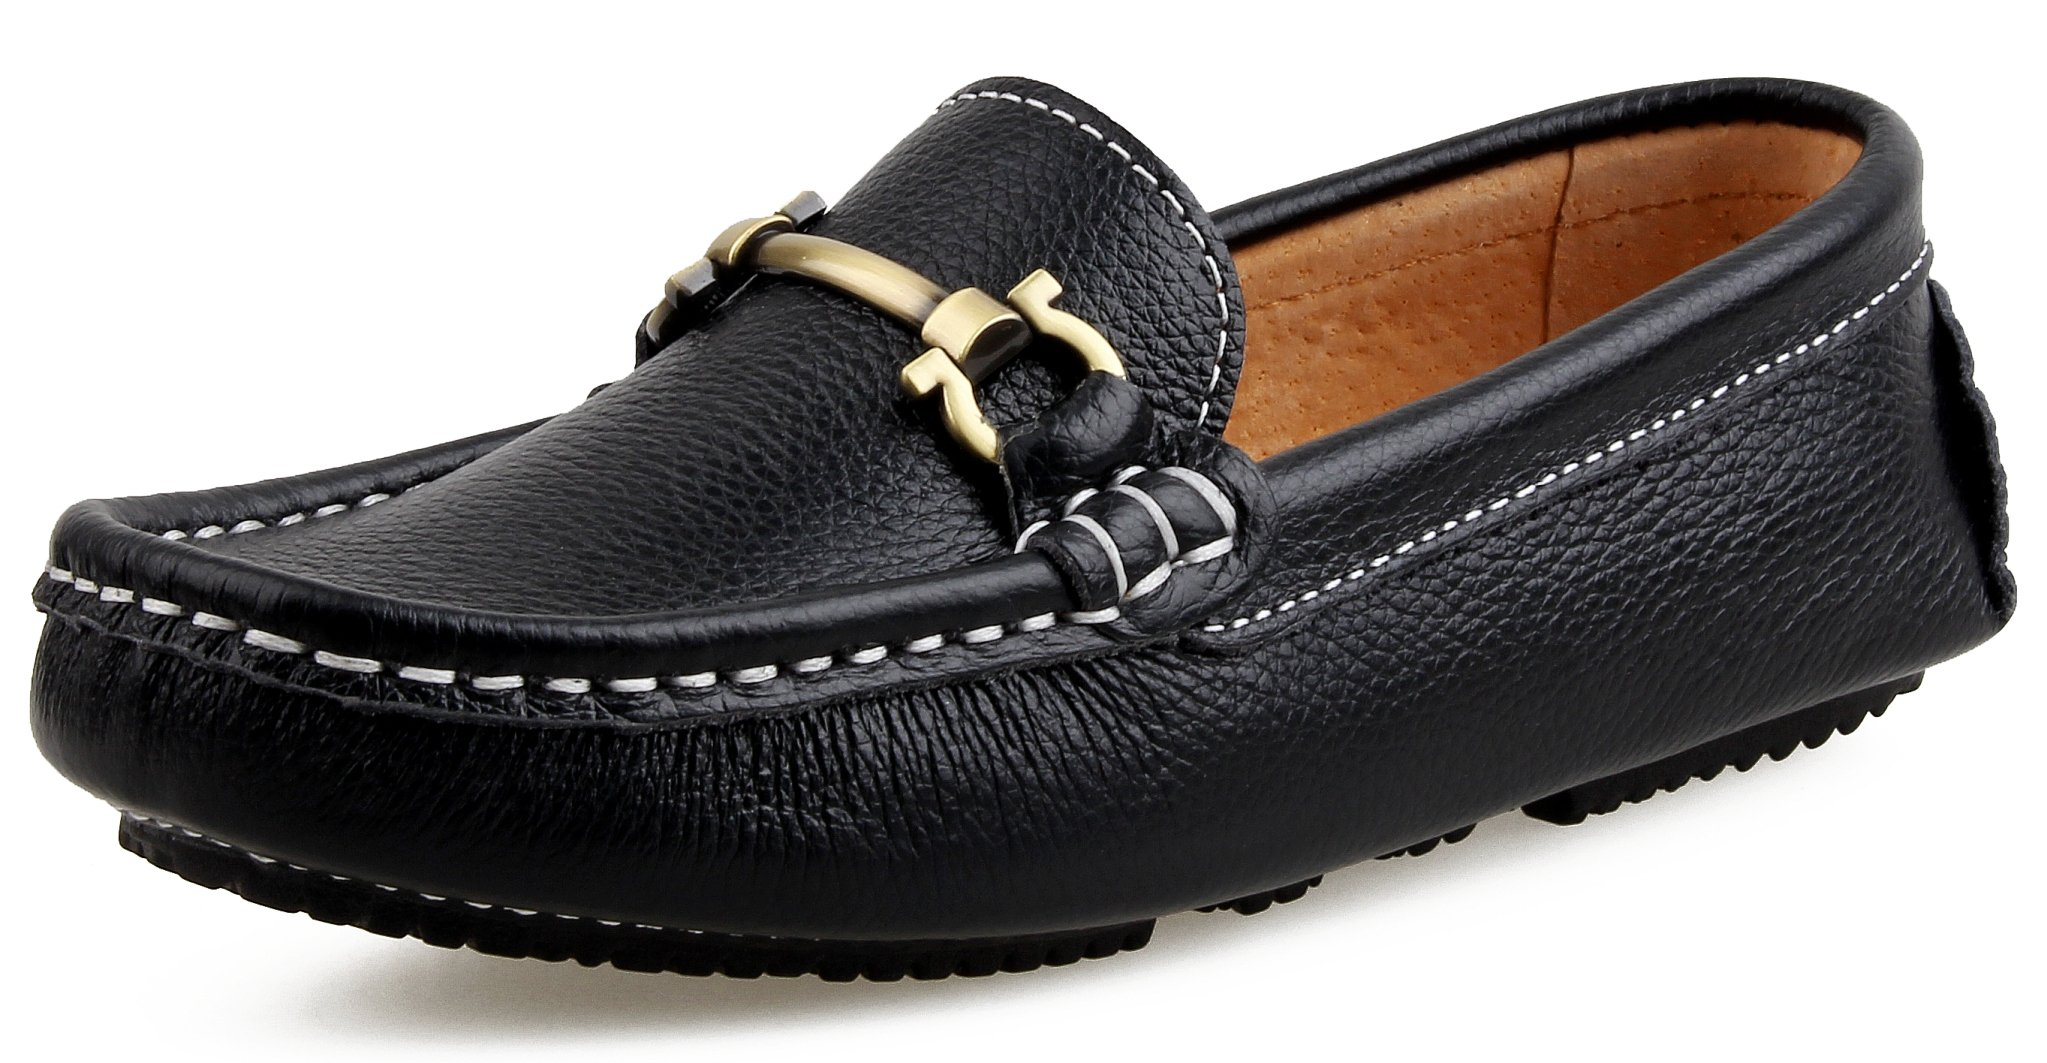 27aaa895c0c SKOEX Boy s Leather Loafers Slip On Boat Shoes   Loafers   Clothing ...